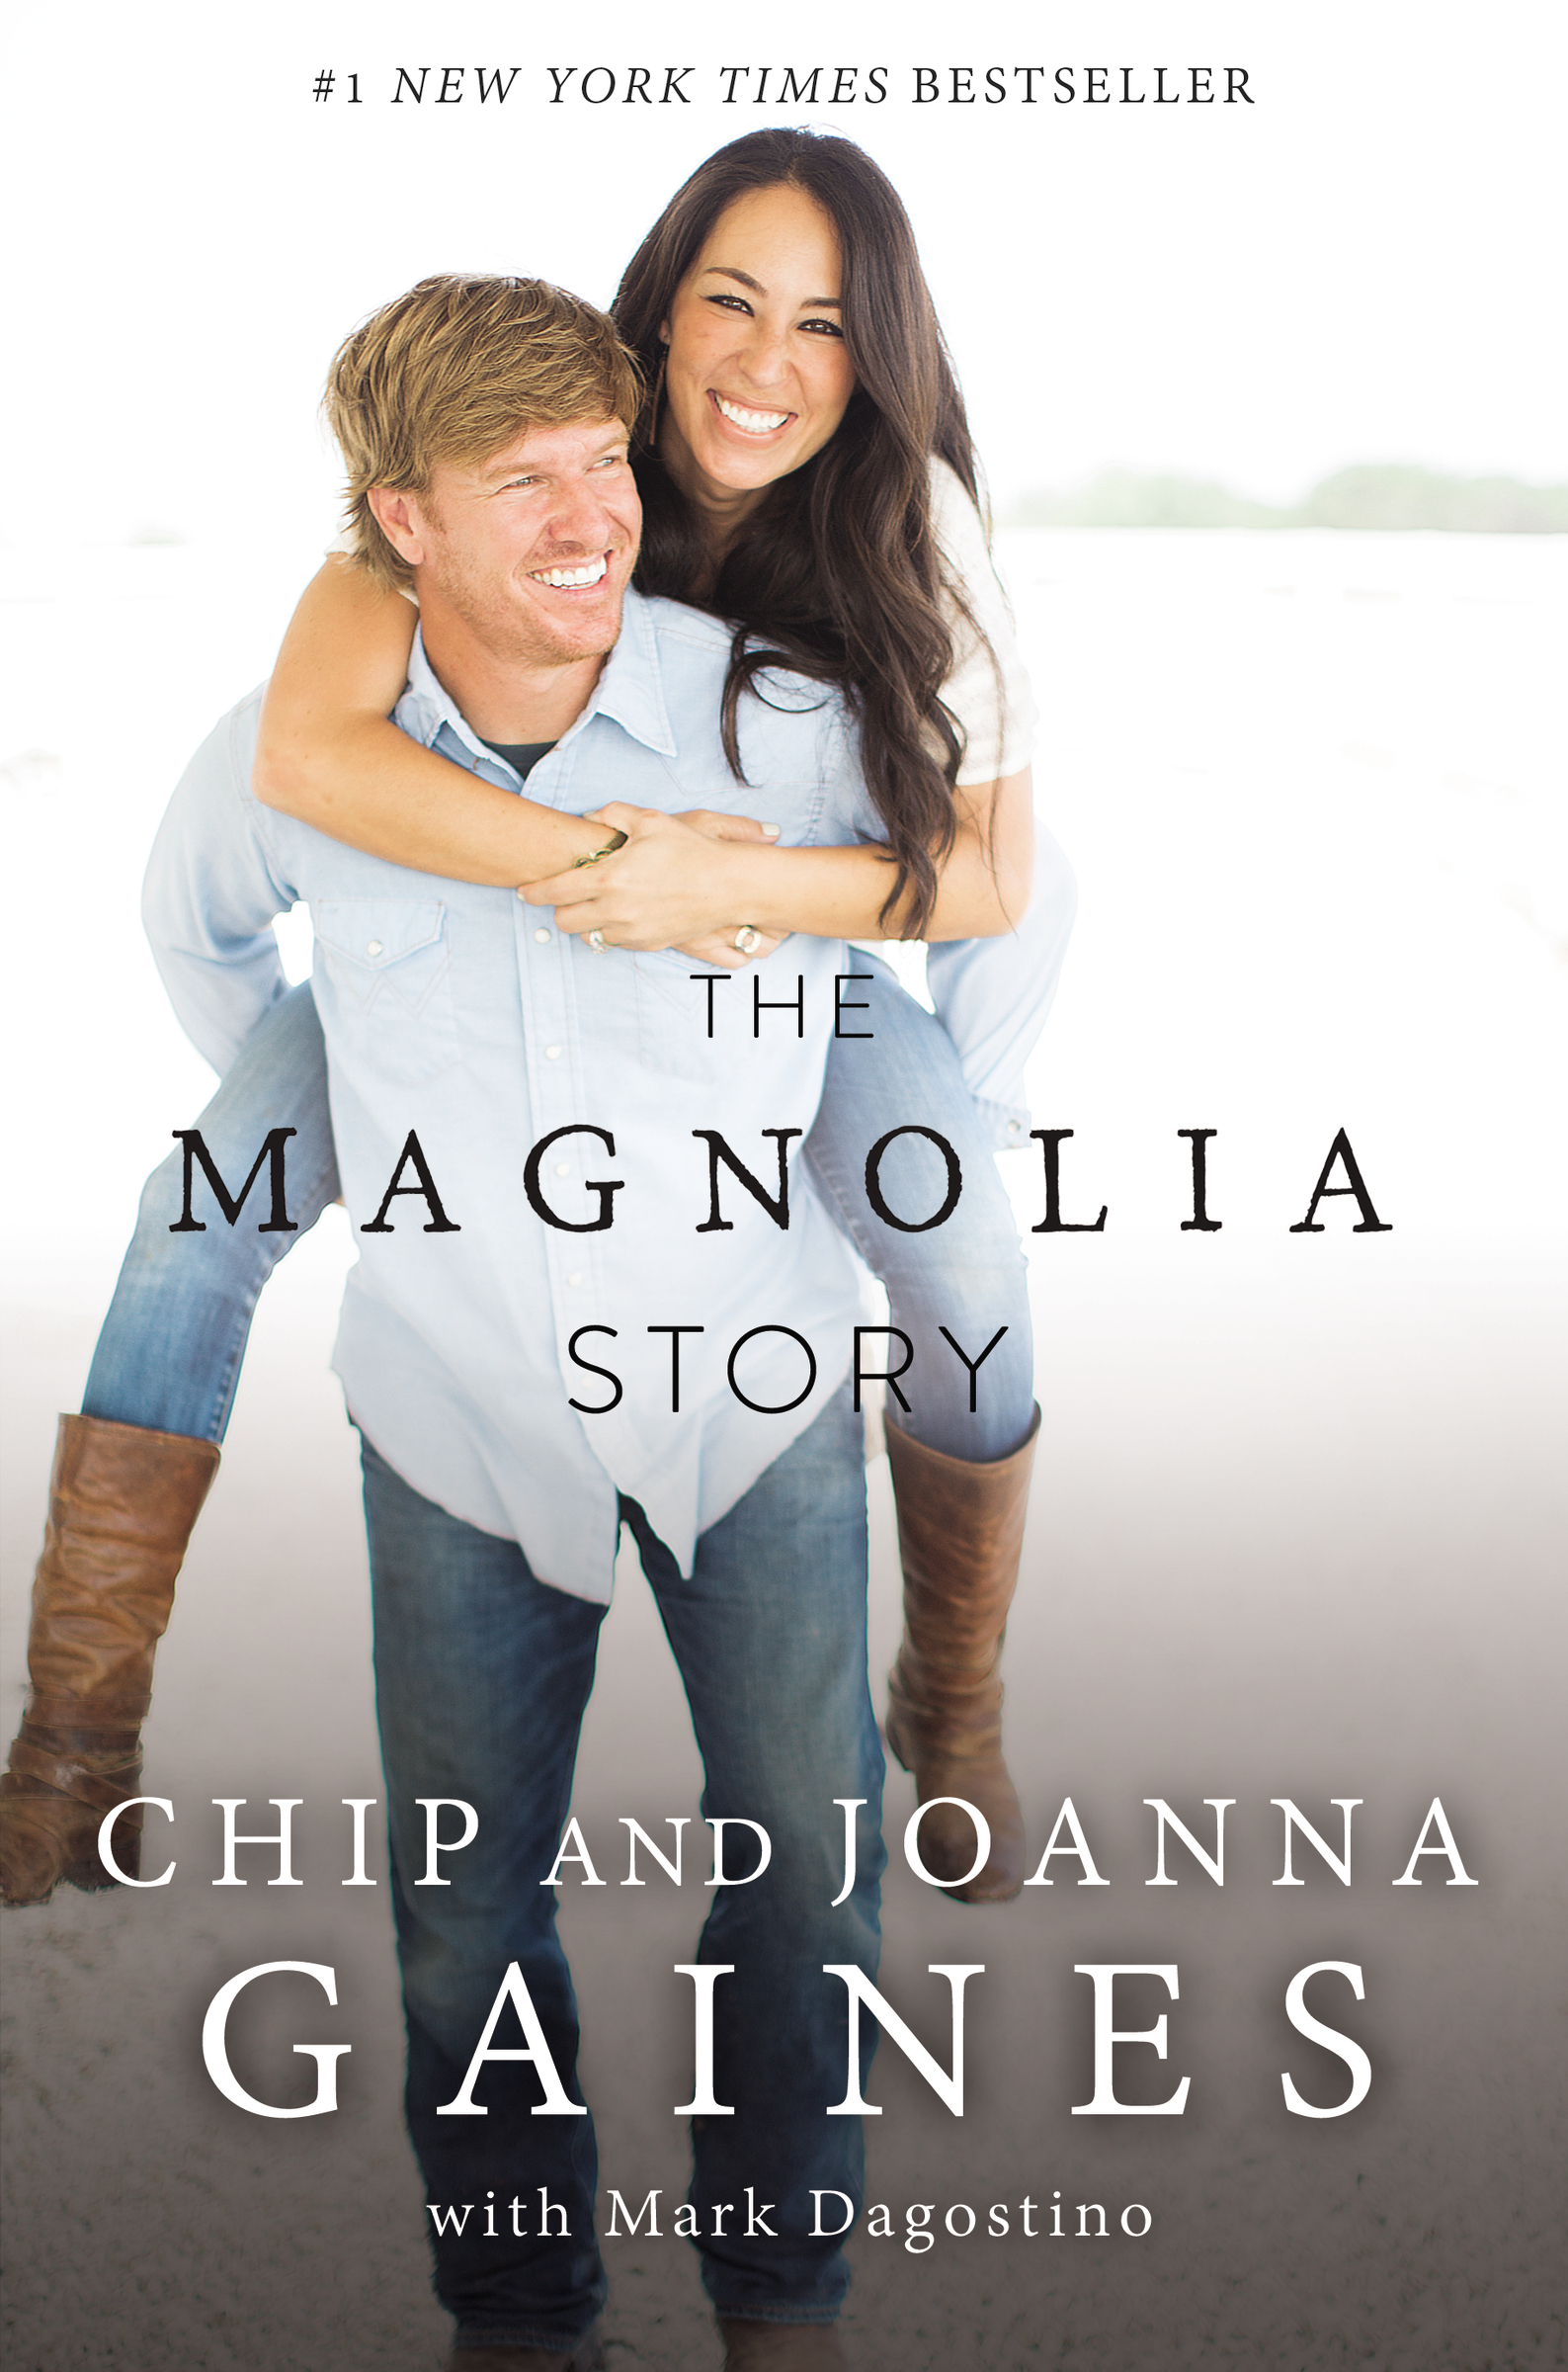 The magnolia story (with bonus content)